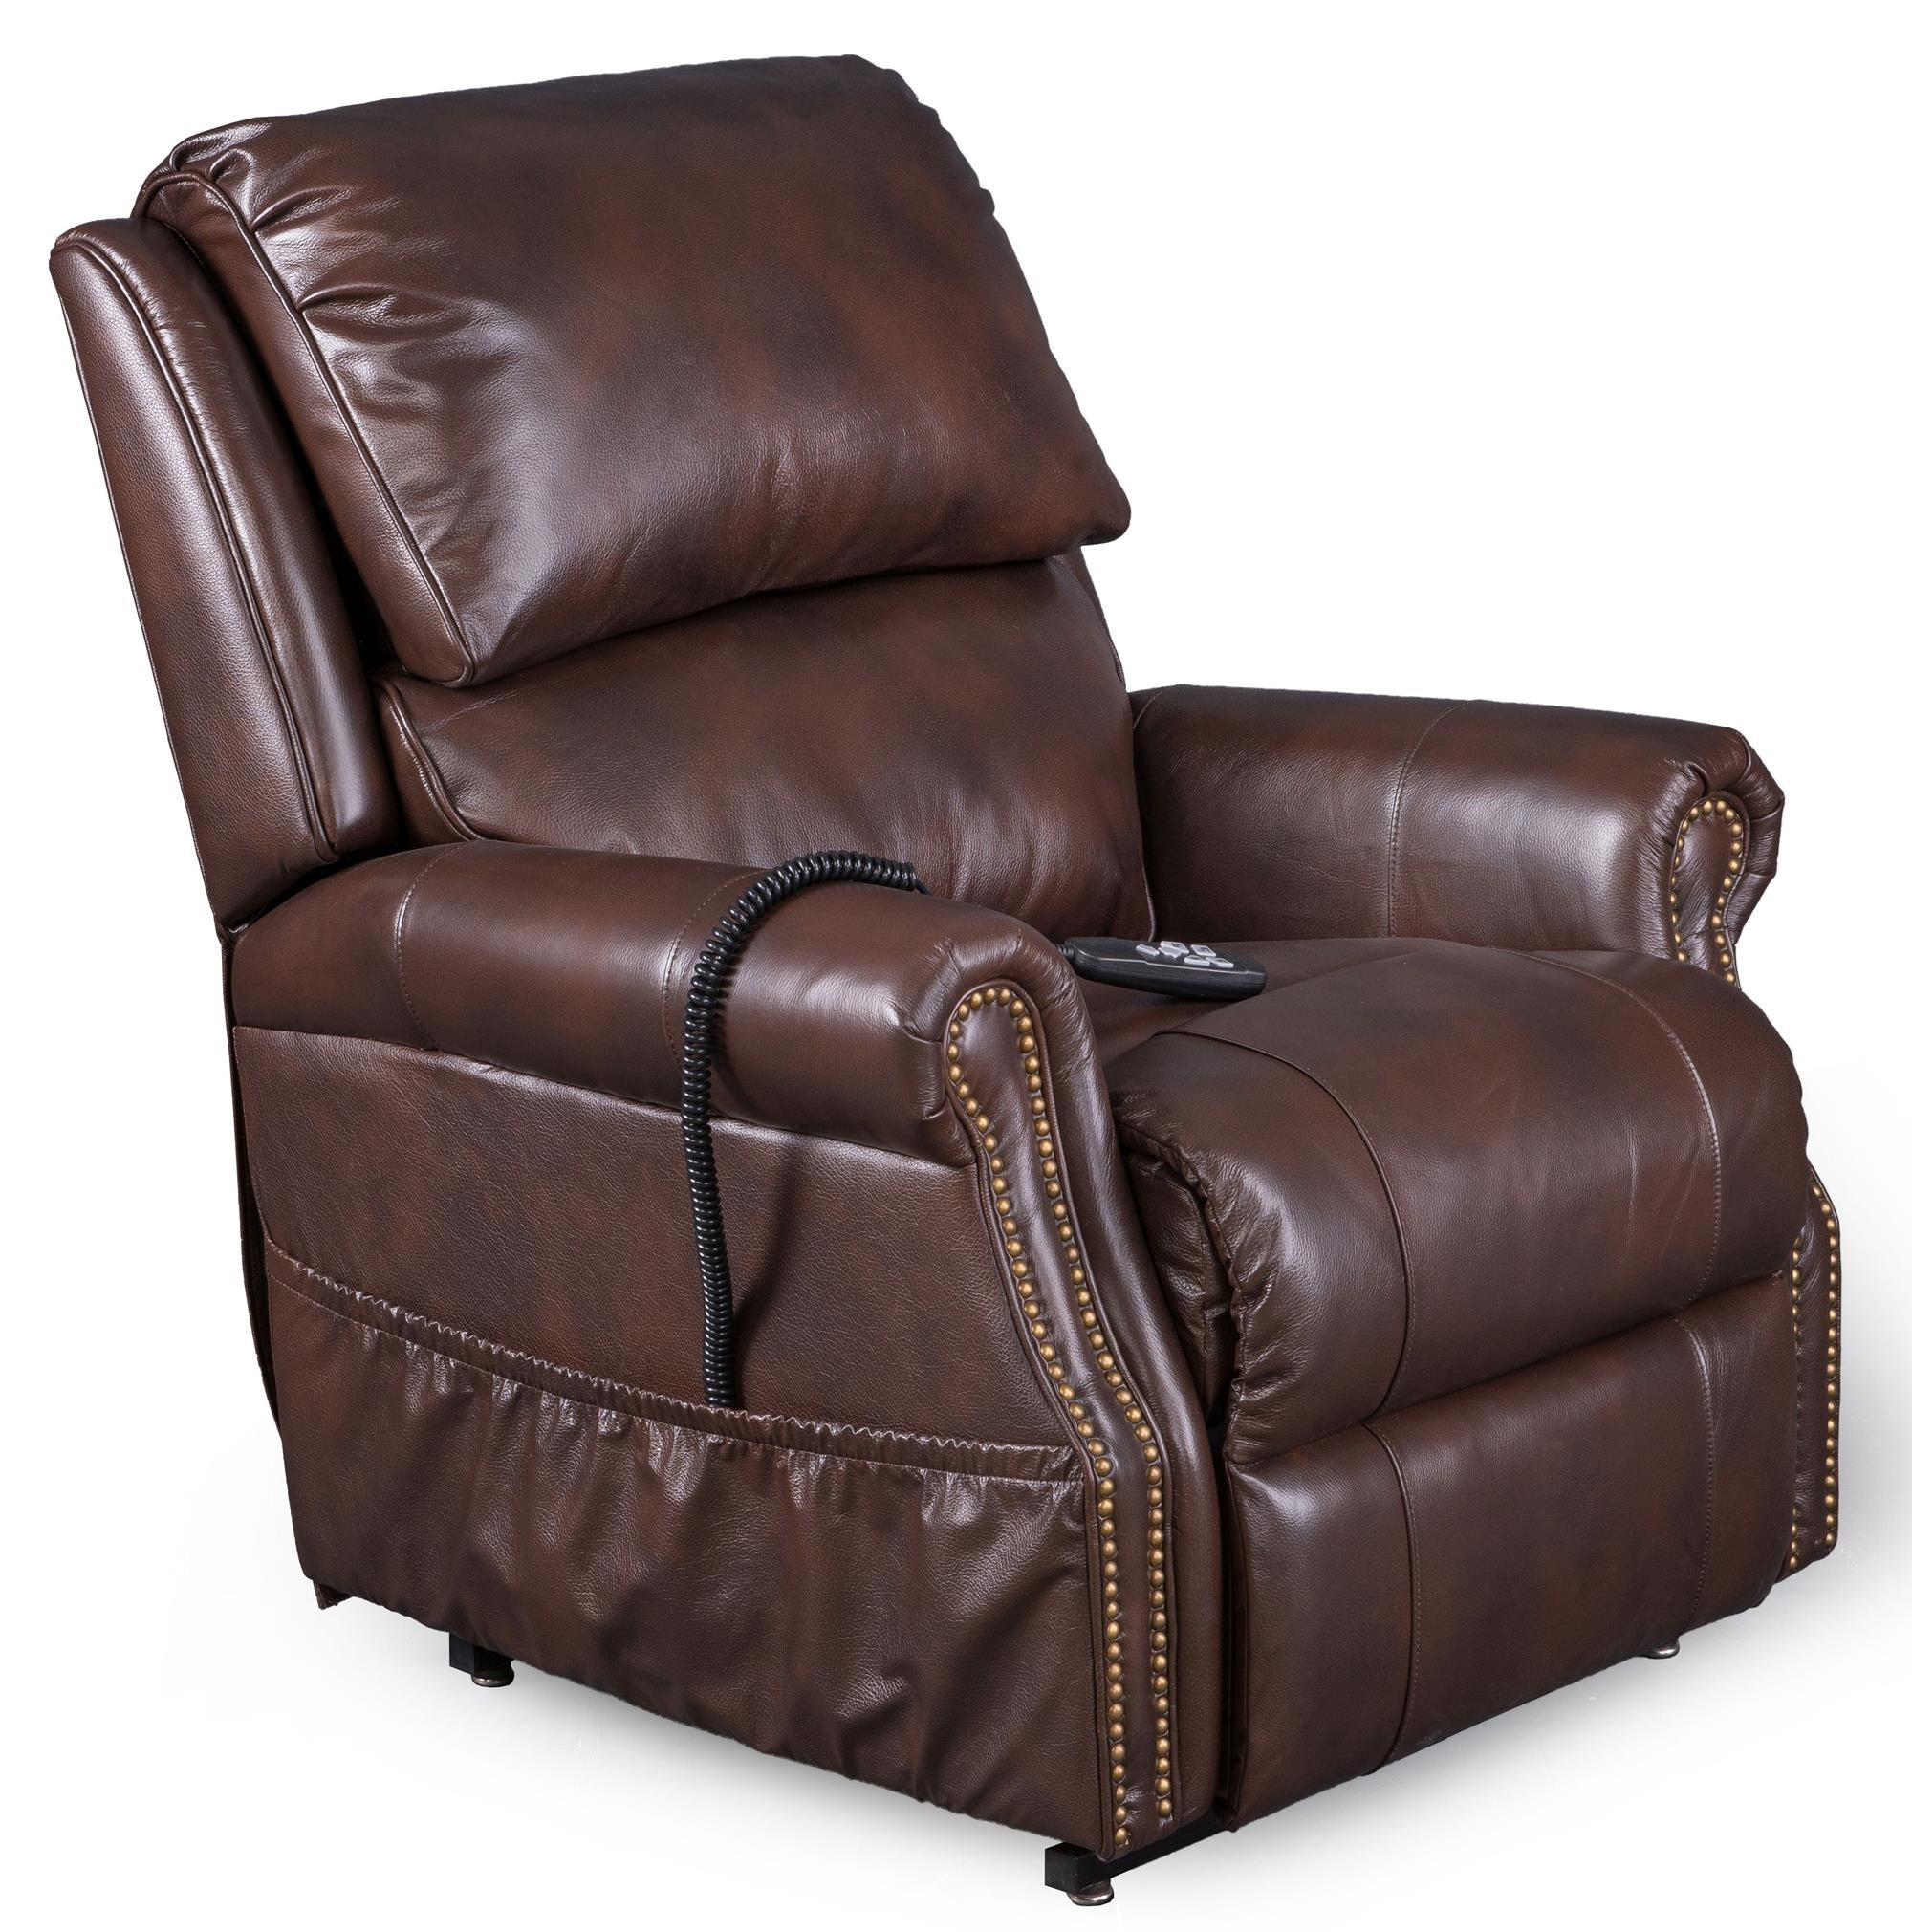 Lift Recliner with Nail Head Trim